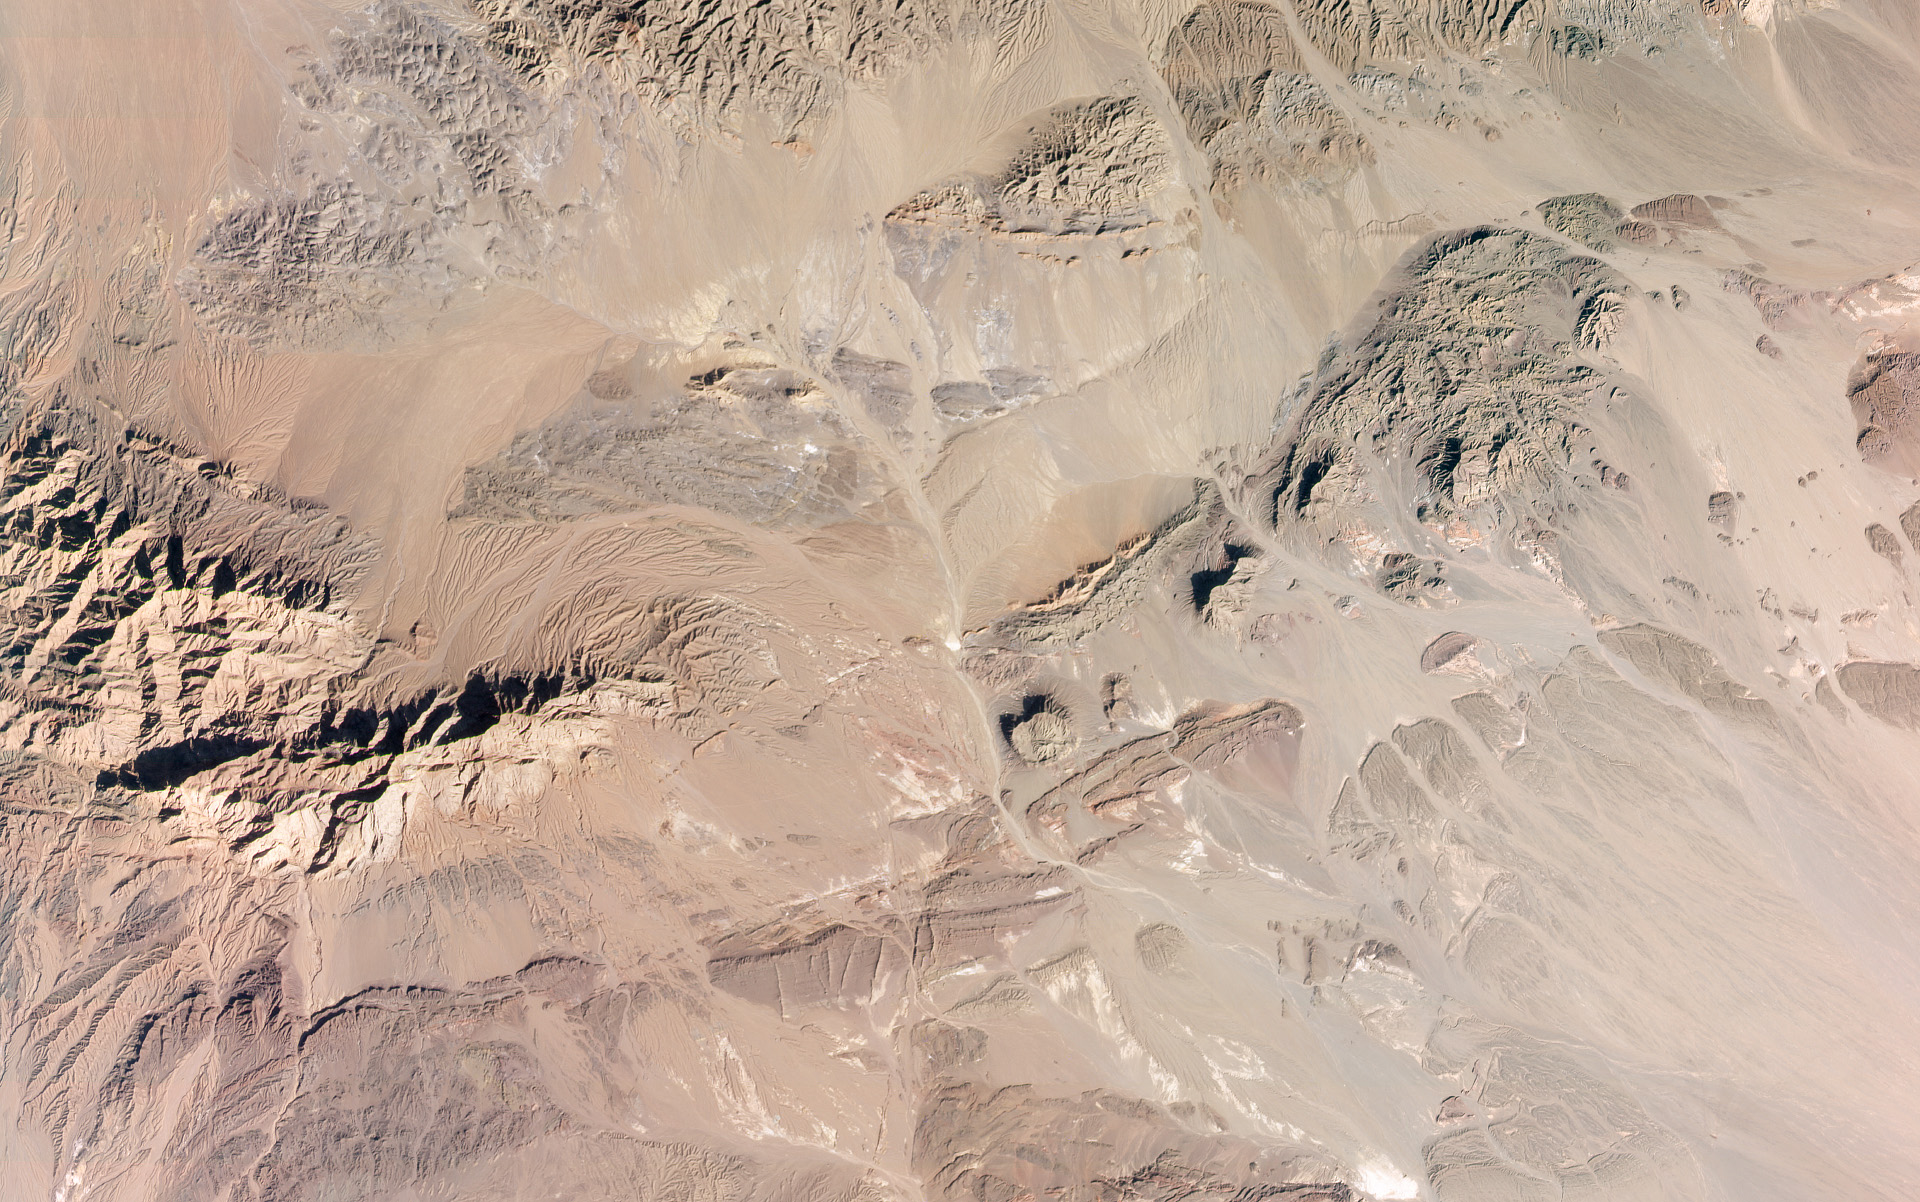 Desert landscape, Semnan, Iran. Collected January 29, 2021. © 2021, Planet Labs Inc. All Rights Reserved.